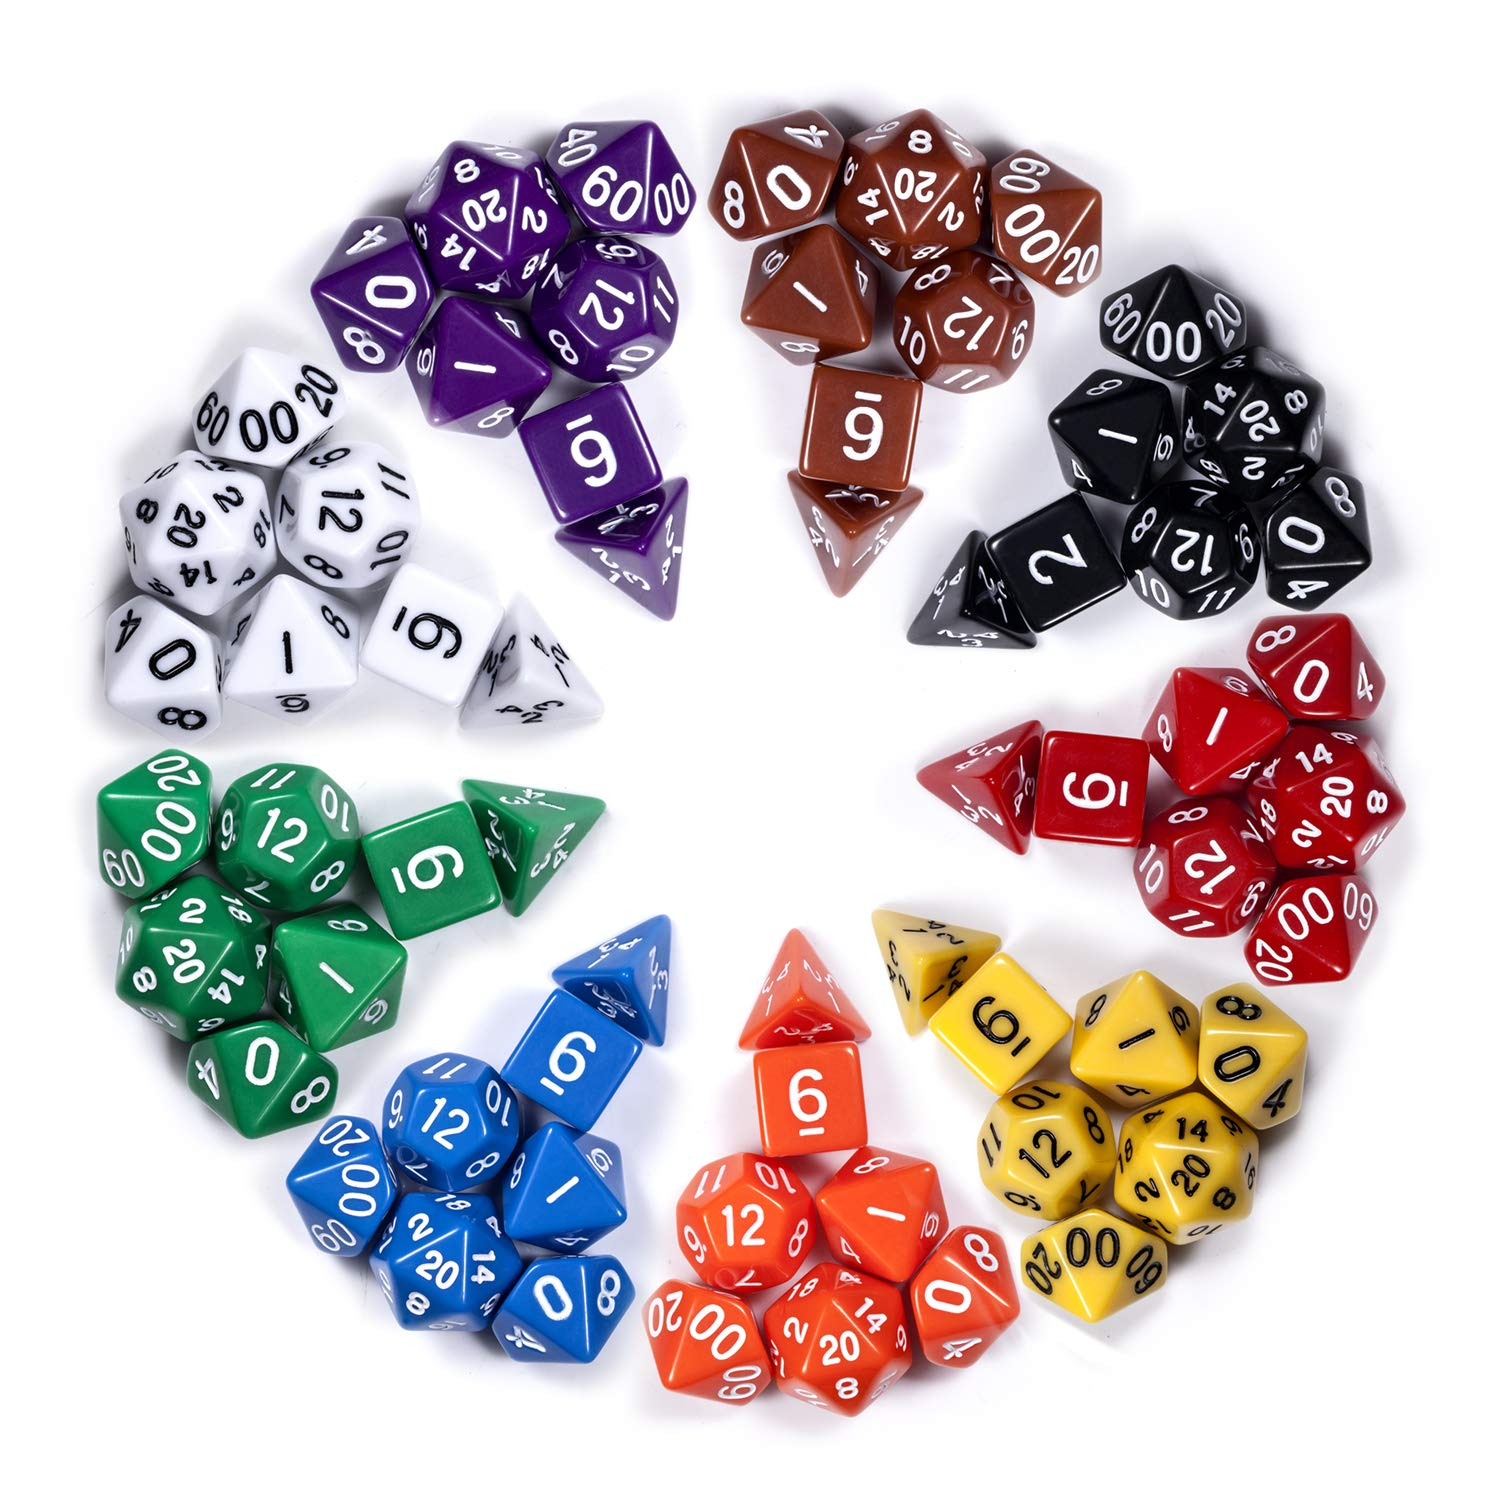 D&D Dice Sets, 9 Sets Assorted Polyhedral Dice Sets with Free Pouch for DND Dungeons and Dragons Roll Playing Game RPG Table Games by DNDND